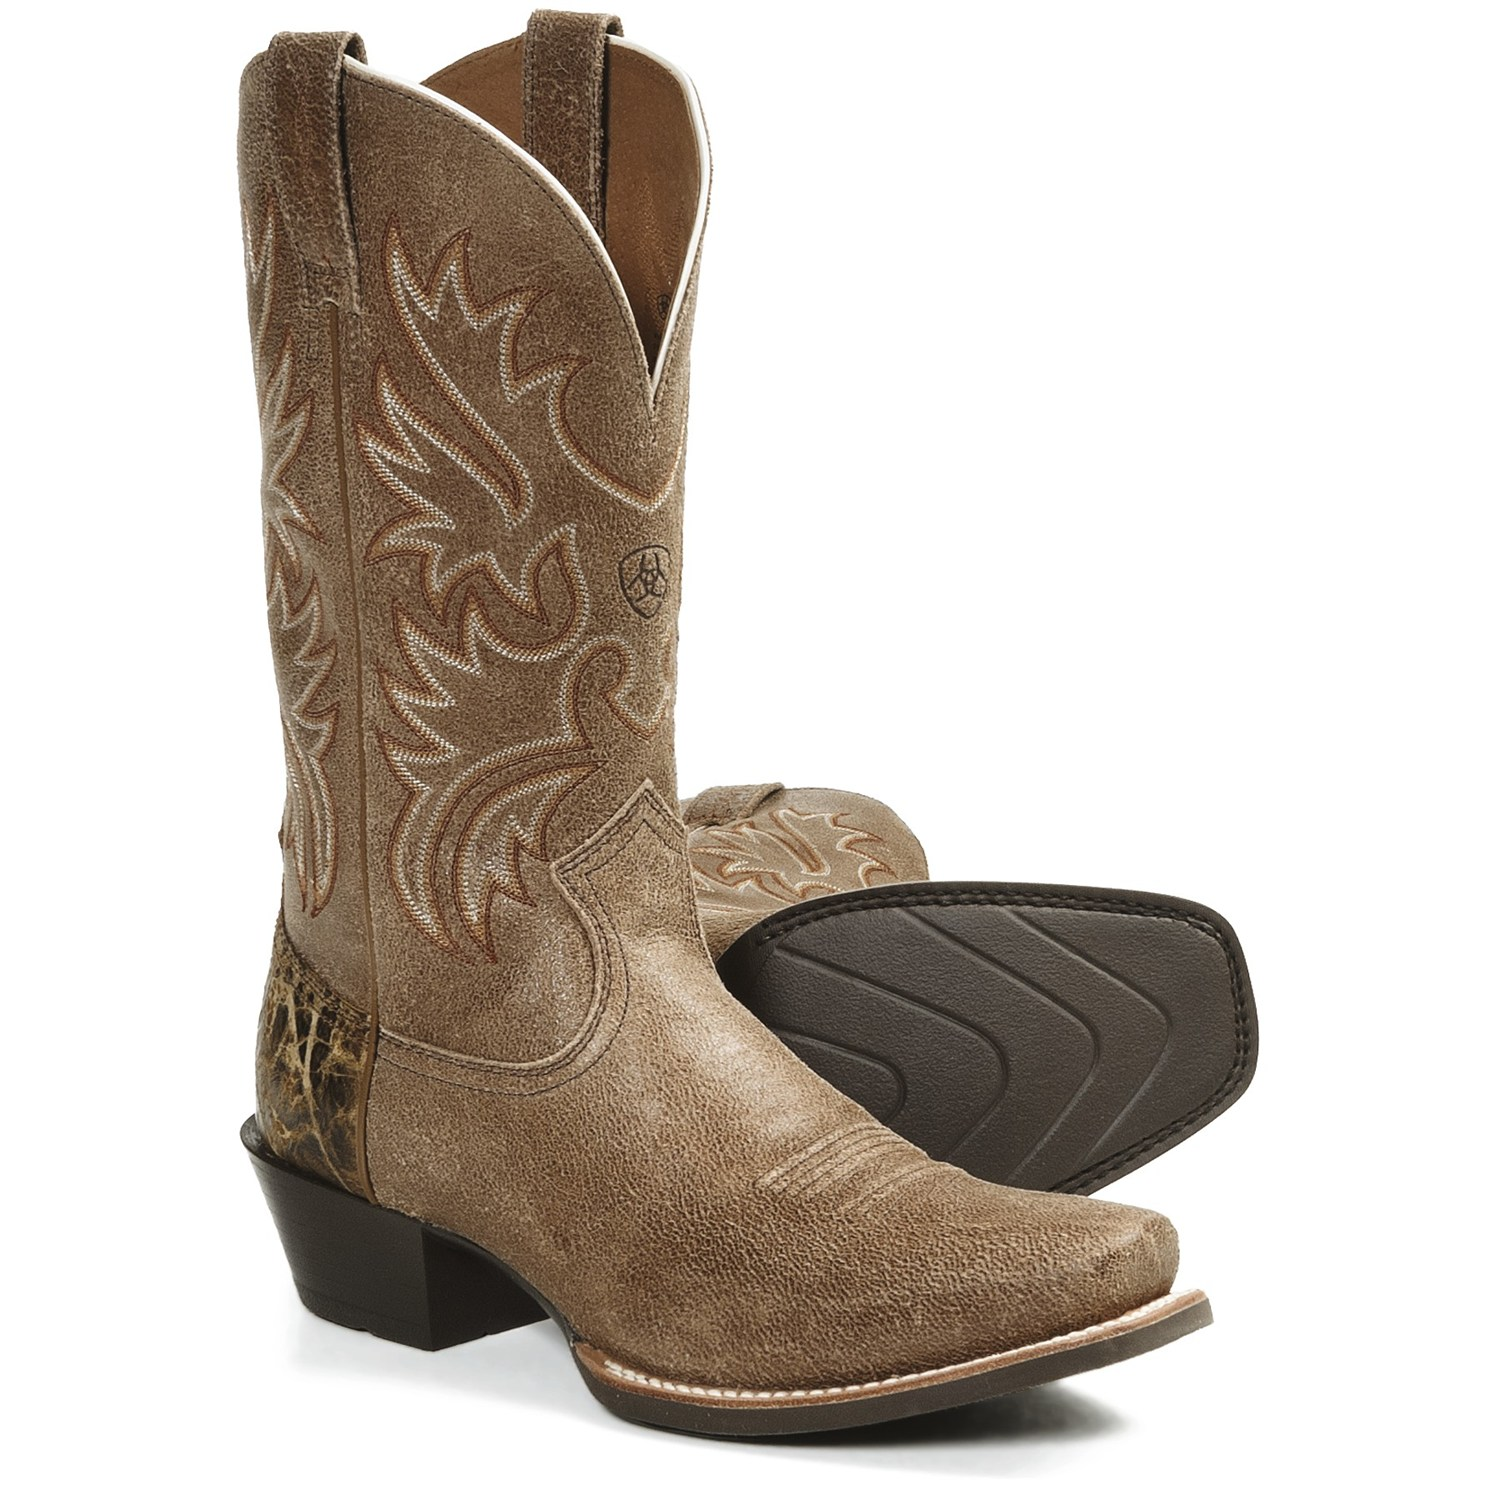 Real Cowboy Boots a6HMl5CG